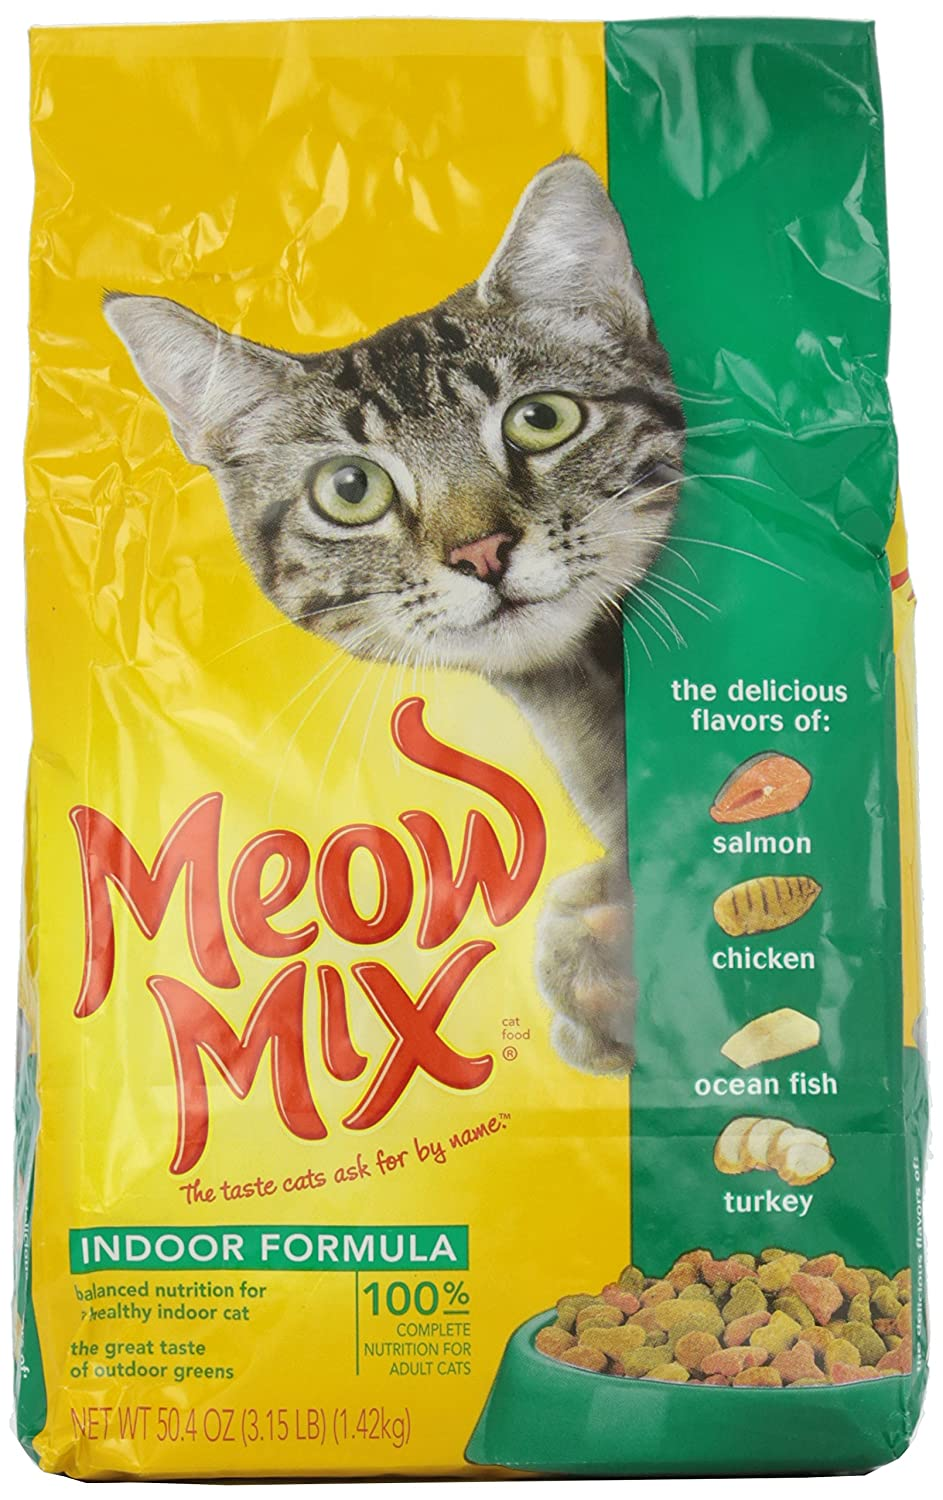 Delmonte Meow Mix Indoor Formula 6 3.15 lb.